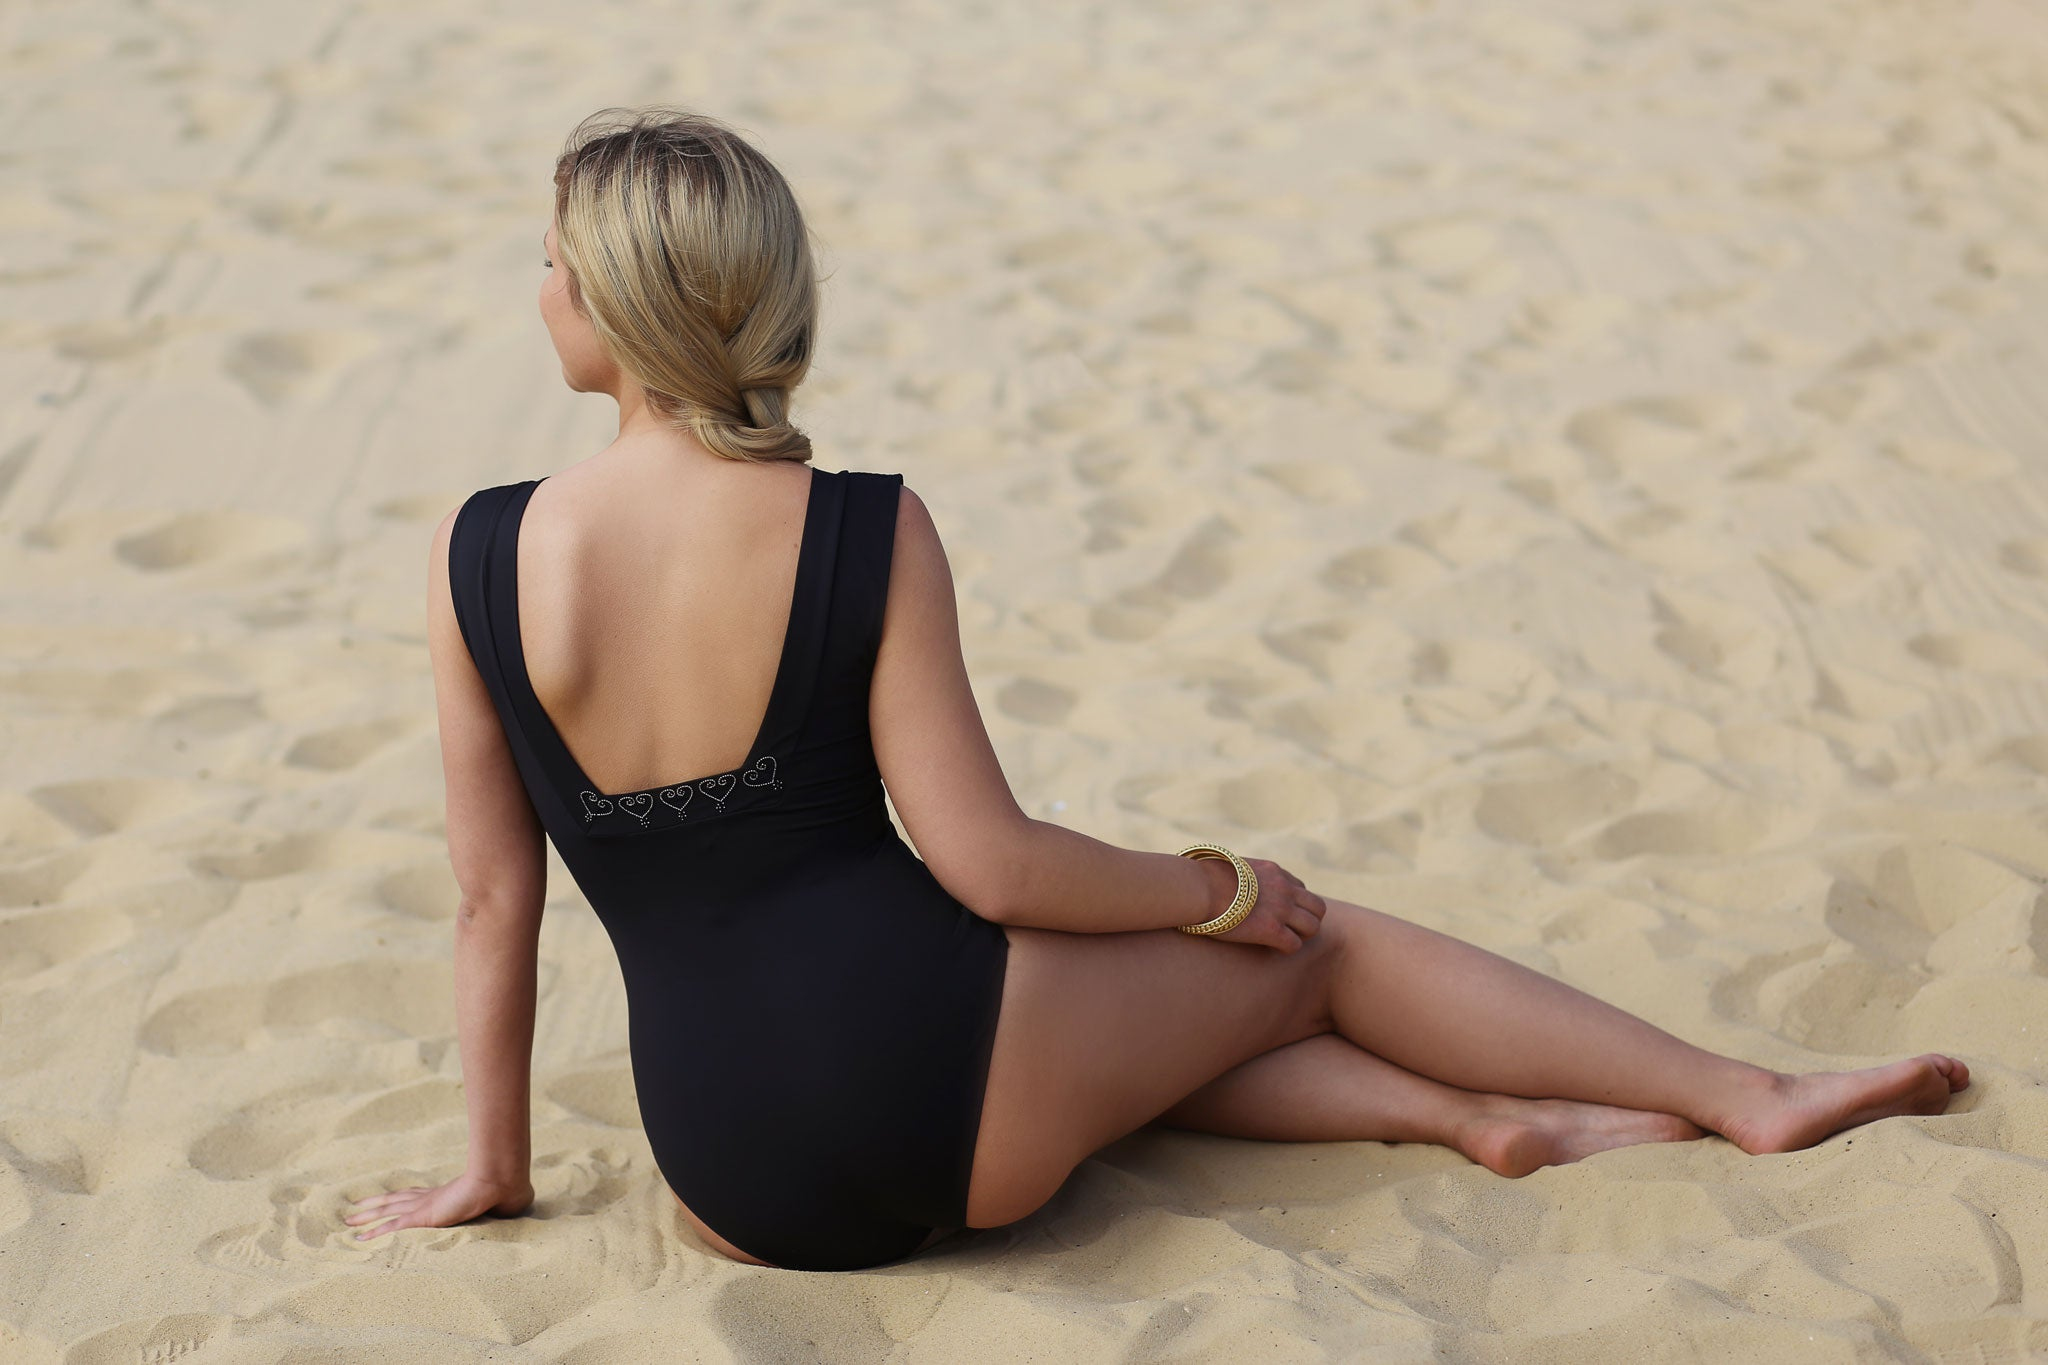 Rose Swimsuit Brighton Volleyball Courts Sassi Swimwear